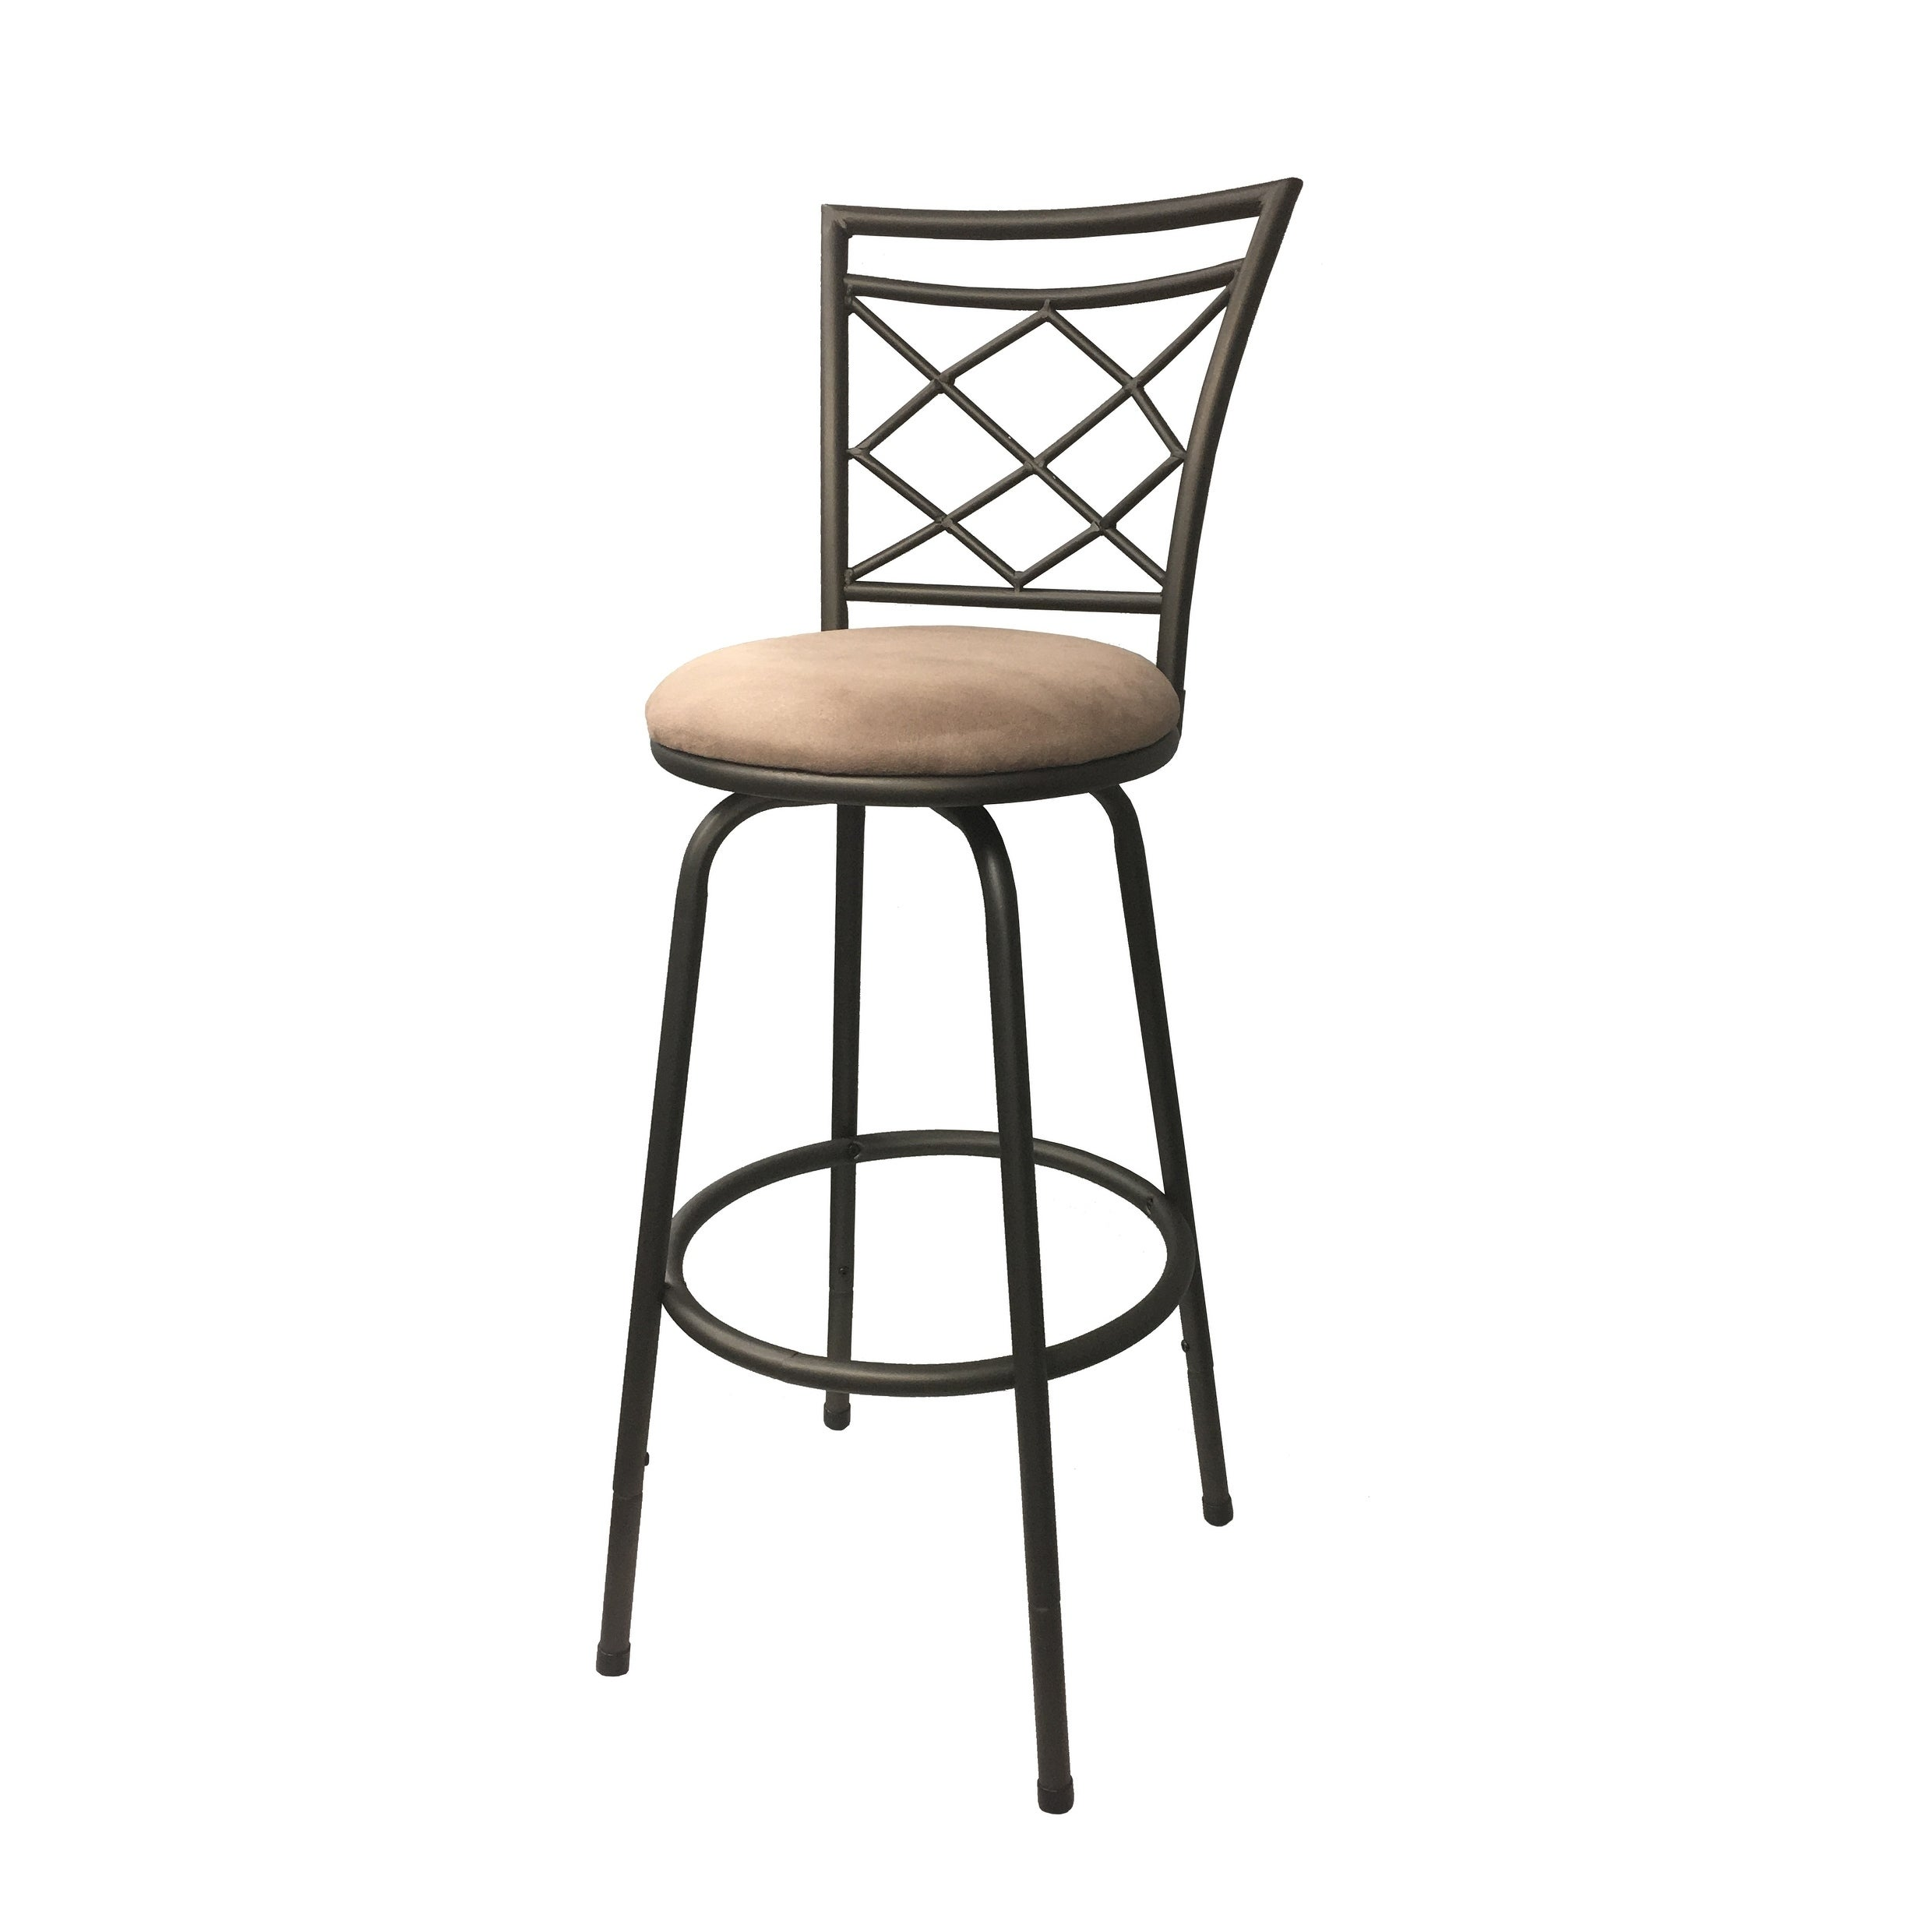 Swell Halfy Round Seat Counter To Bar Height Adjustable 360 Degree Swivel Metal Bar Stool Short Links Chair Design For Home Short Linksinfo